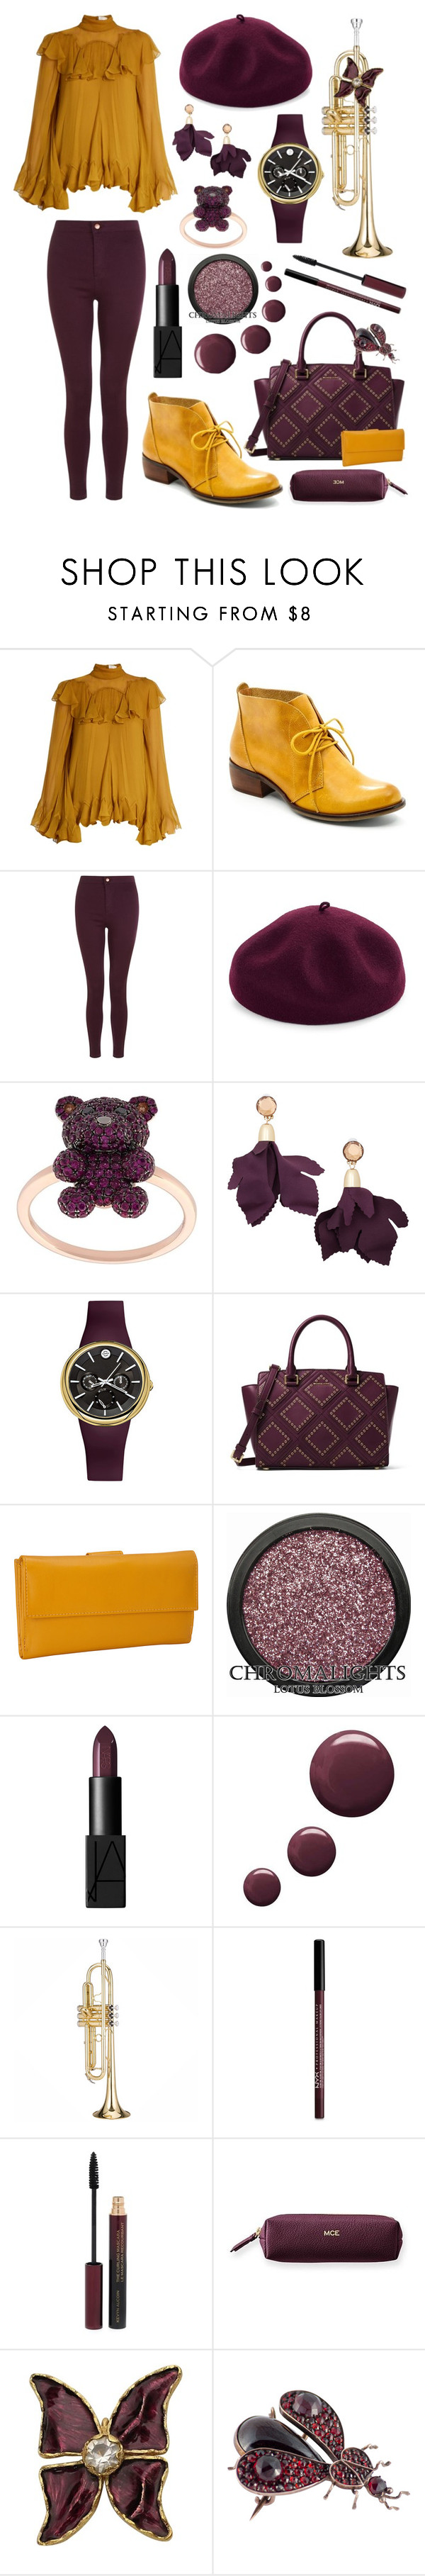 """Smooth Jazz I"" by rinnypooh2 ❤ liked on Polyvore featuring Chloé, Latigo, Kathy Jeanne, Khai Khai, MANGO, Philip Stein, MICHAEL Michael Kors, R & R Collections, NARS Cosmetics and Topshop"